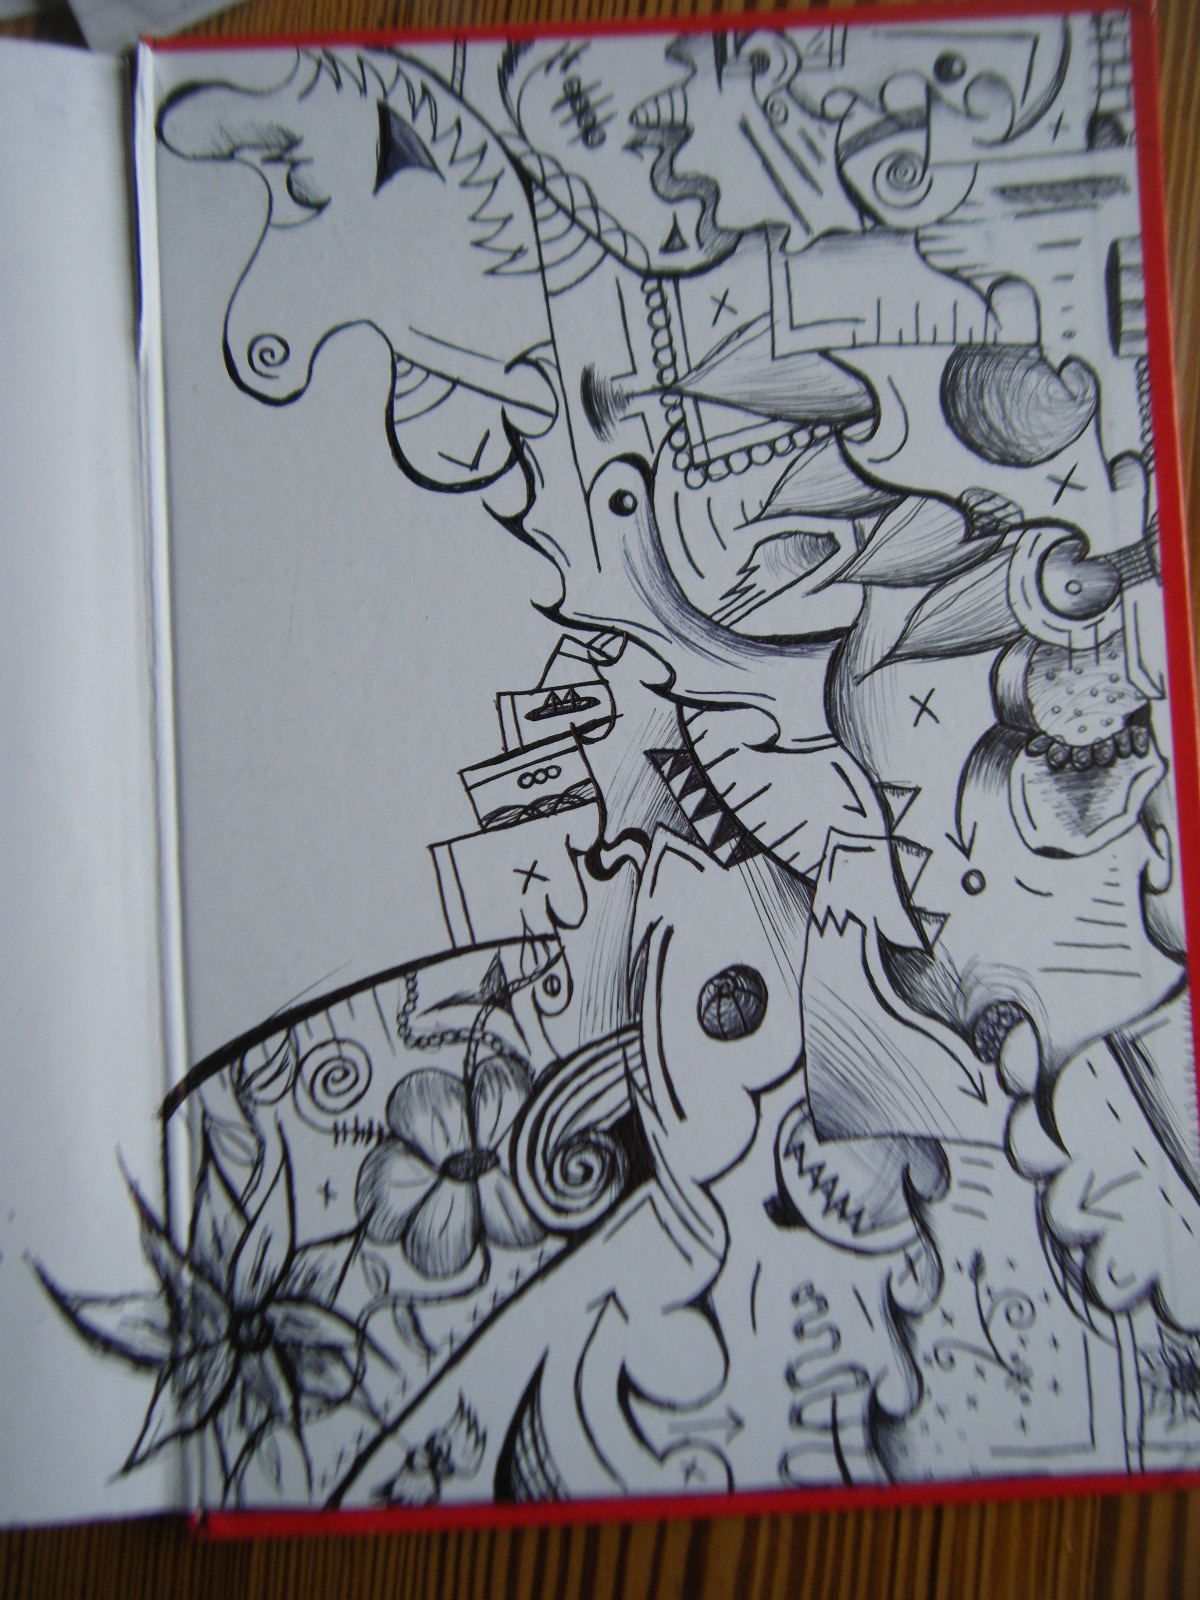 Graffiti Style Doodles.: Graffiti Style Doodles. Awesome Doodles Drawings